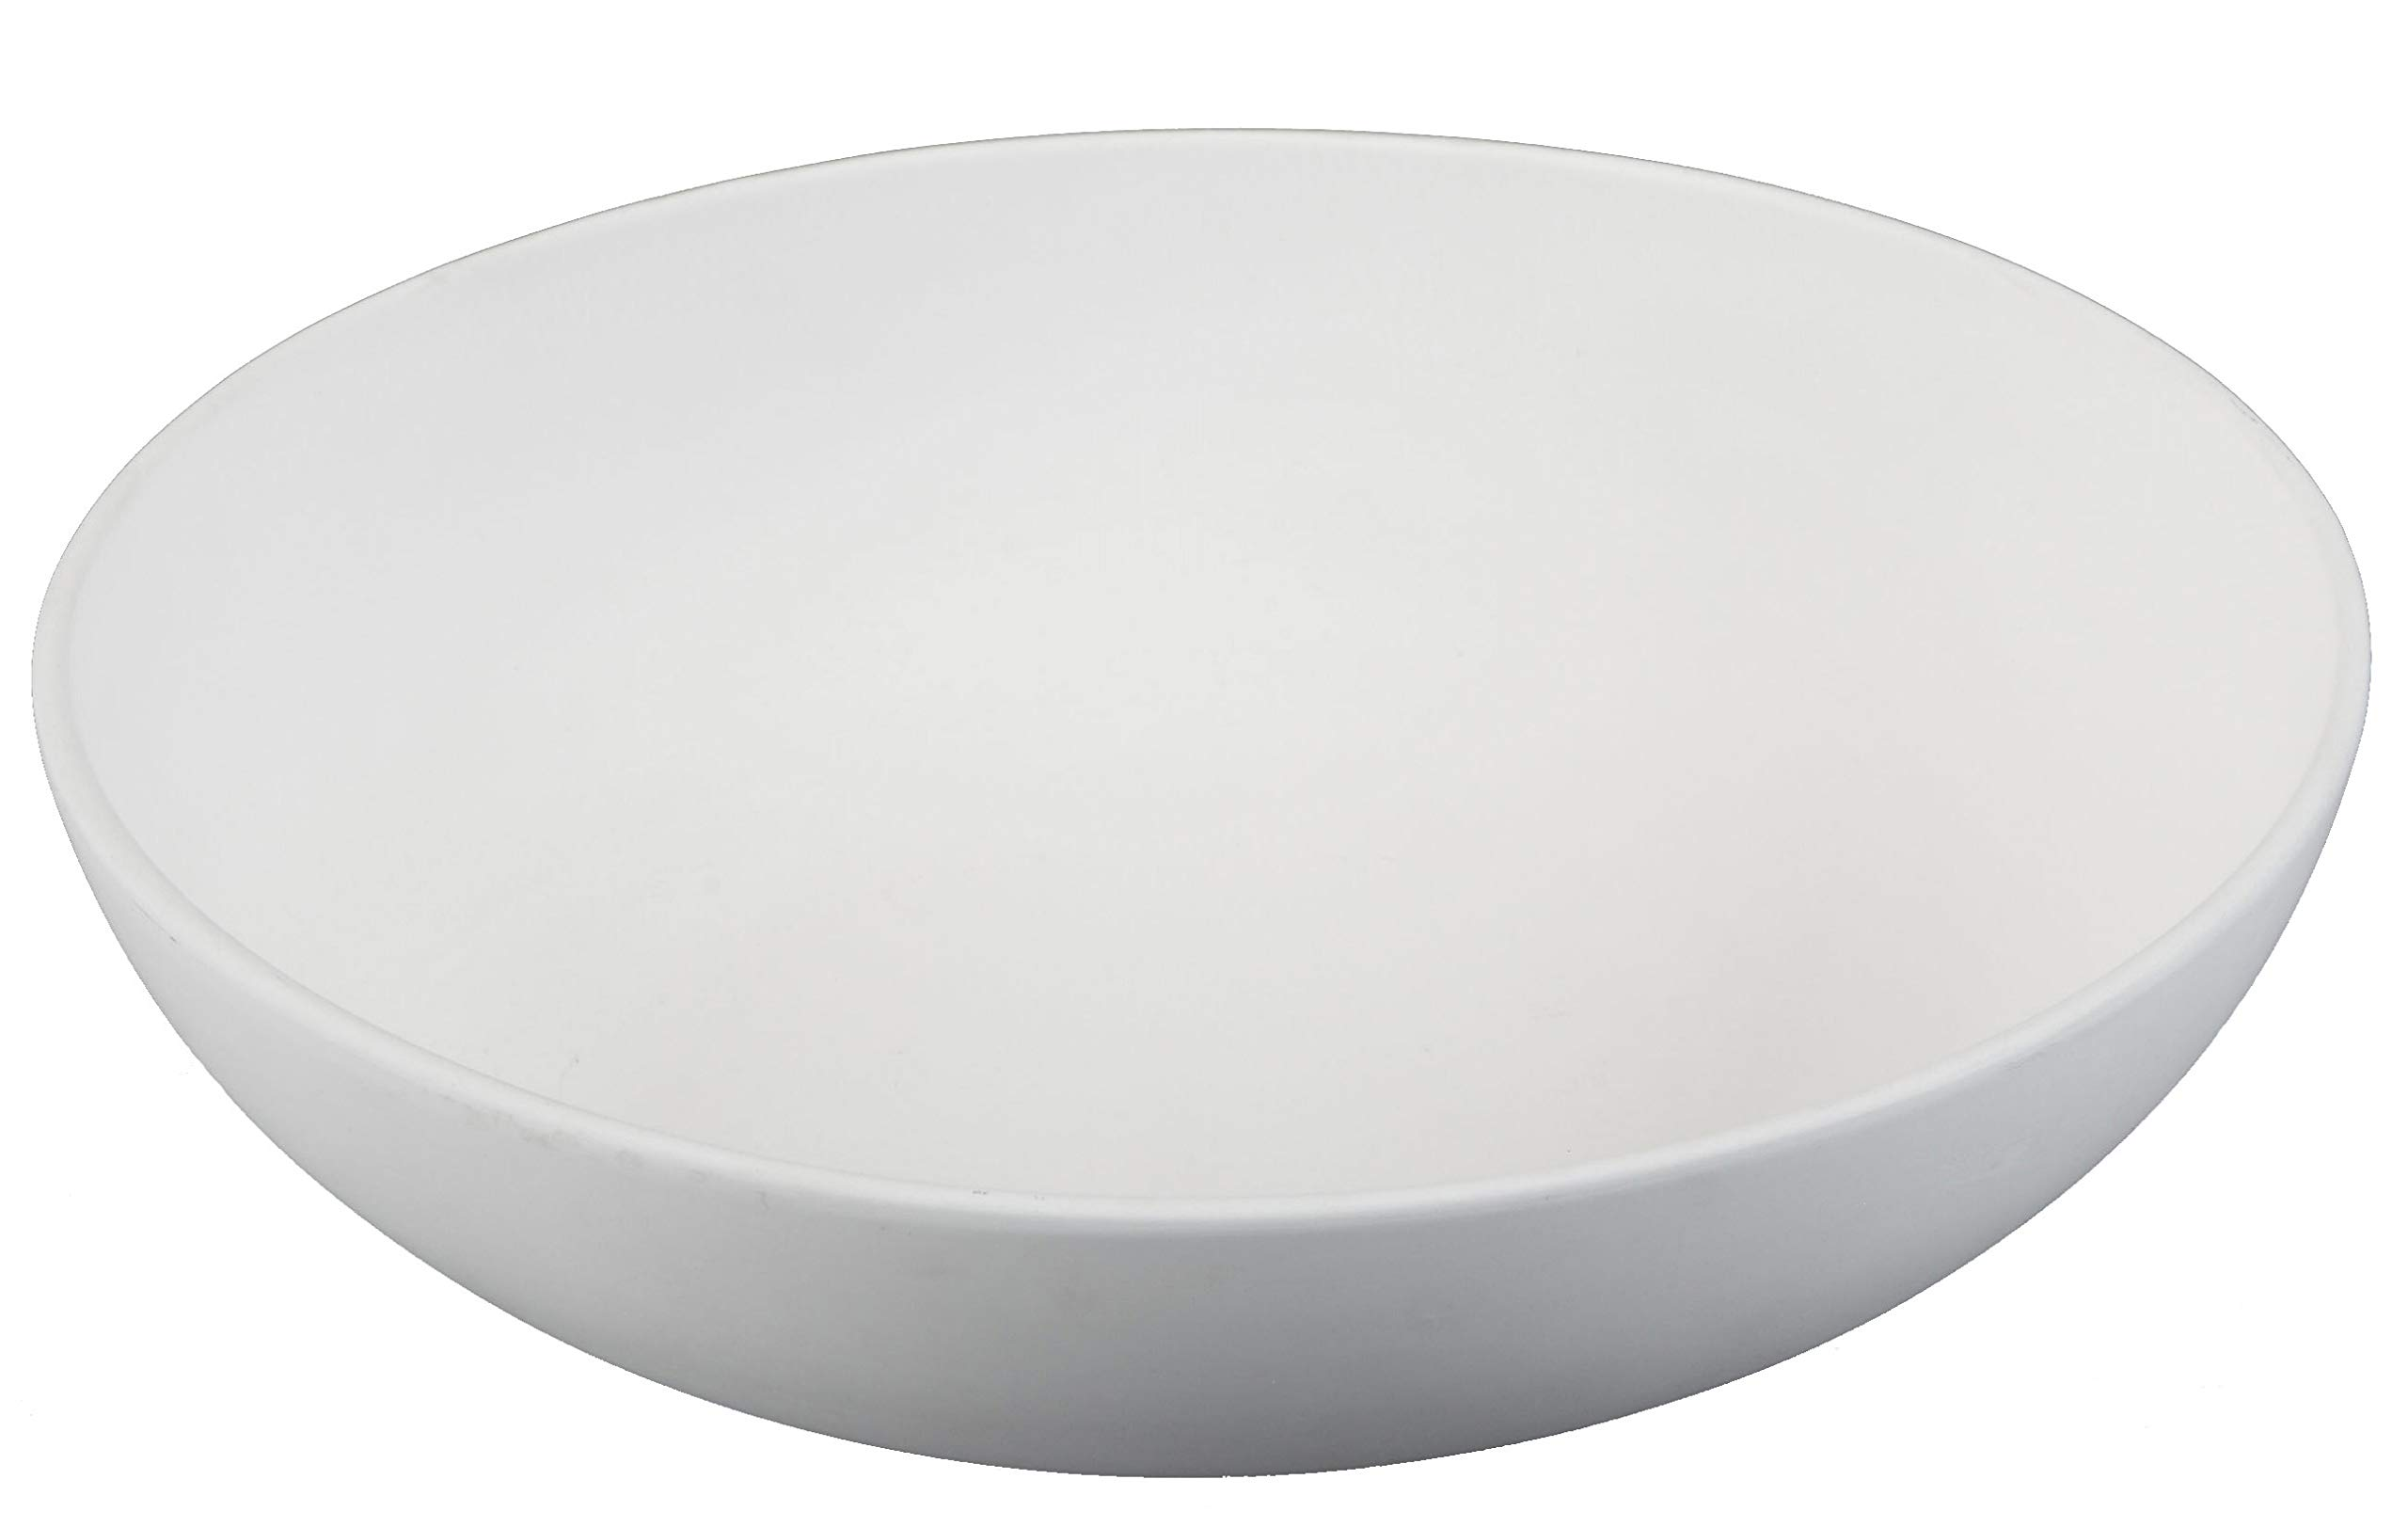 Creative Hobbies 11 Inch Coupe Serving Bowl, Case of 6, Unfinished Ceramic Bisque, with How to Paint Your Own Pottery Booklet by Creative Hobbies (Image #1)